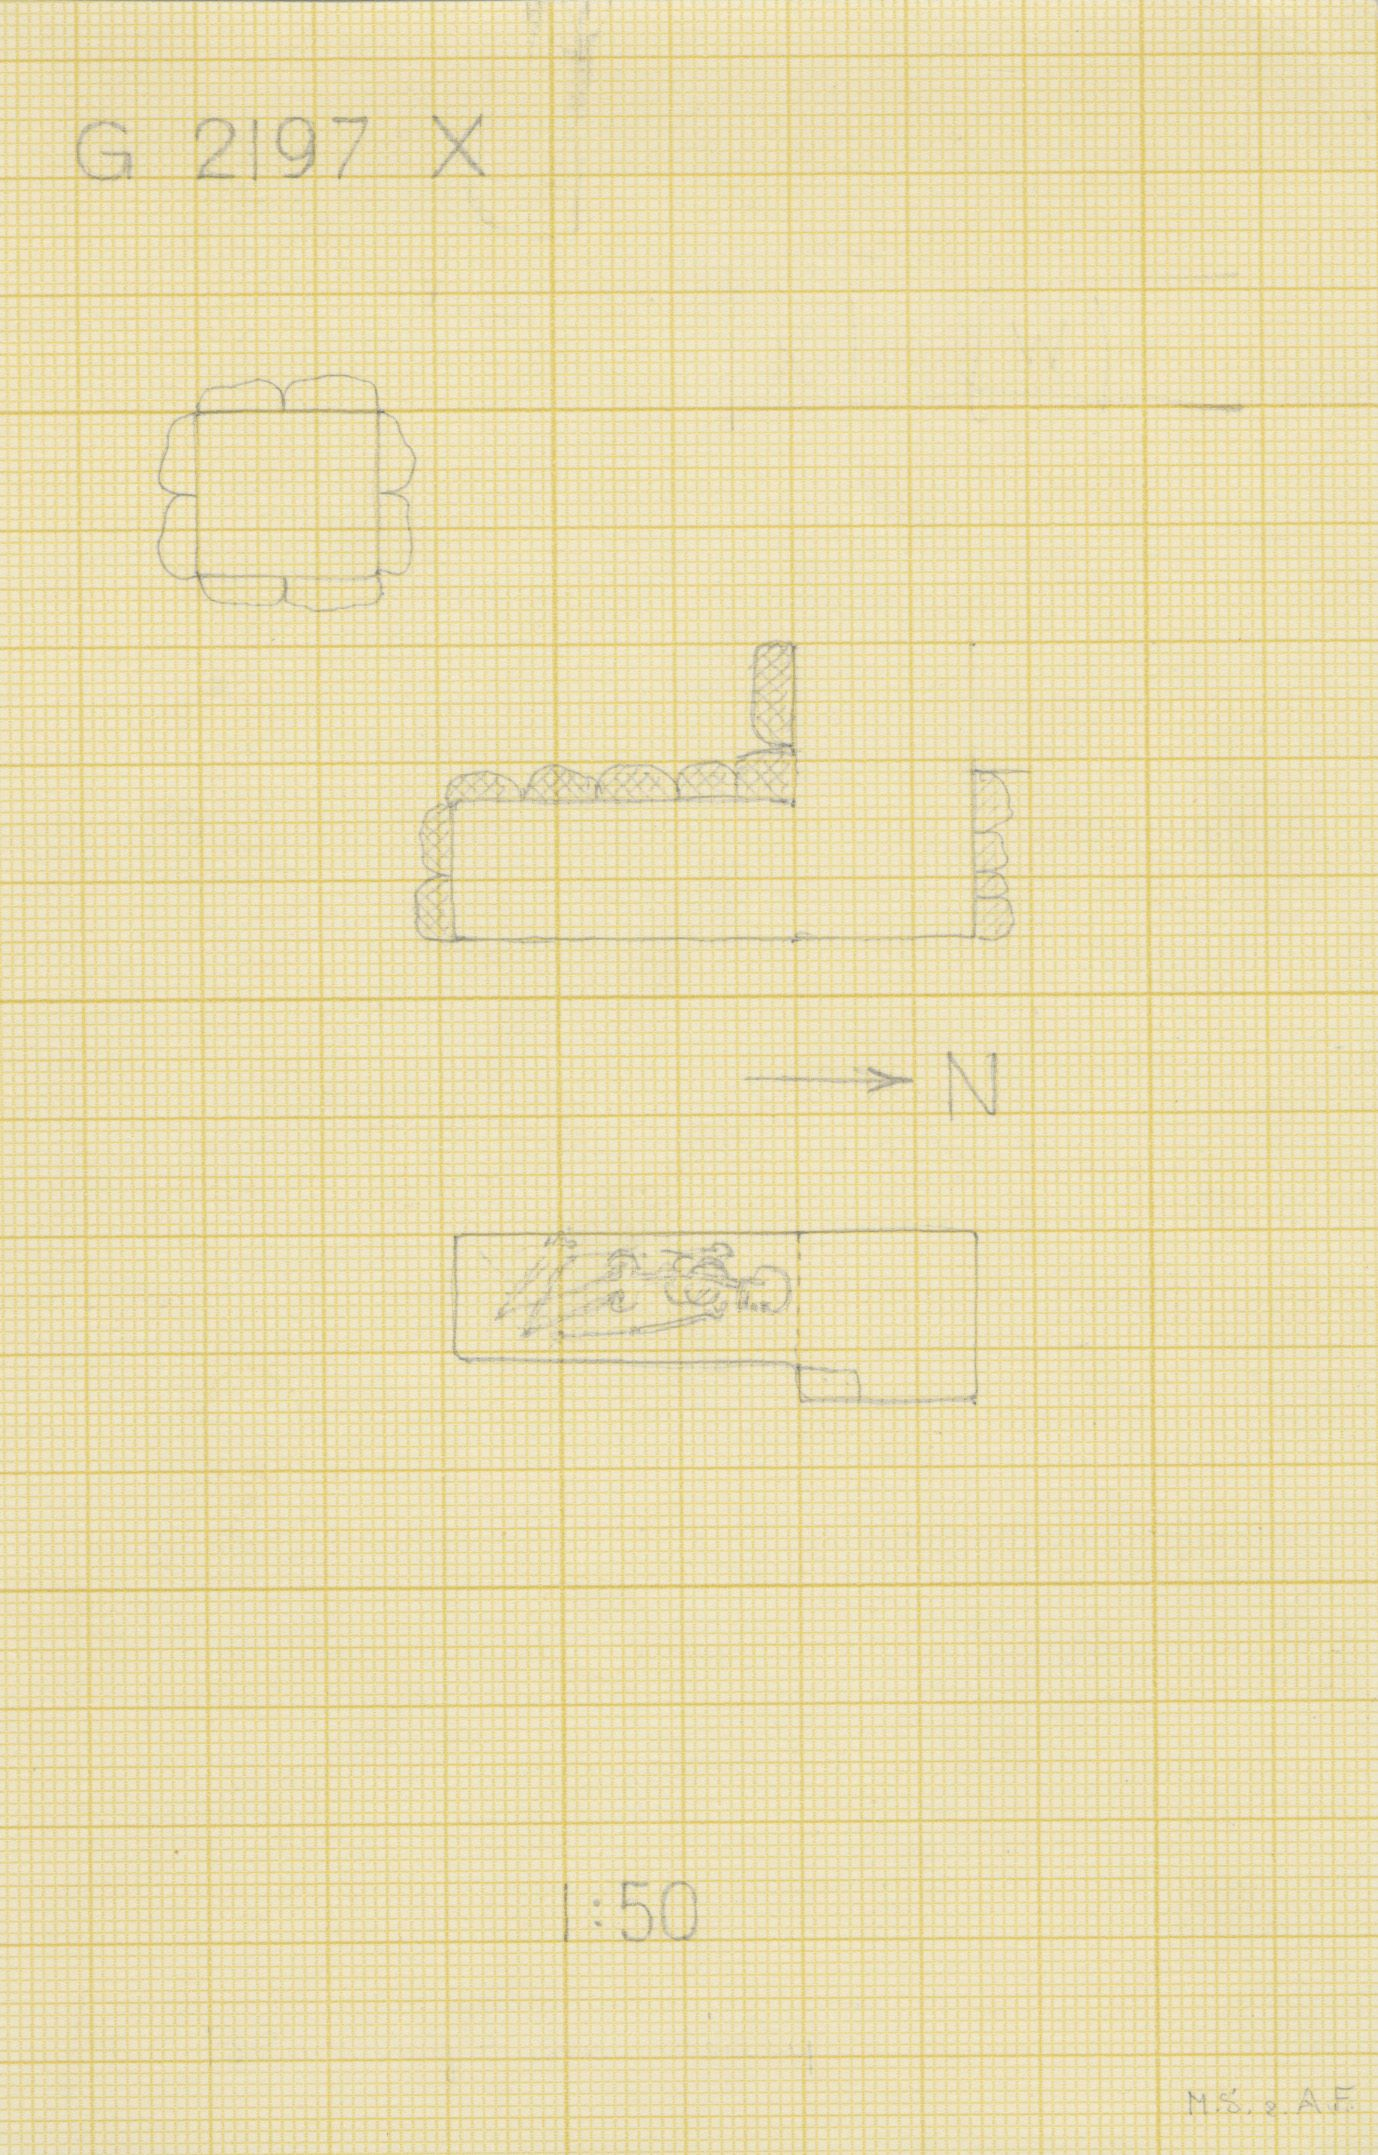 Maps and plans: G 2197, Shaft X